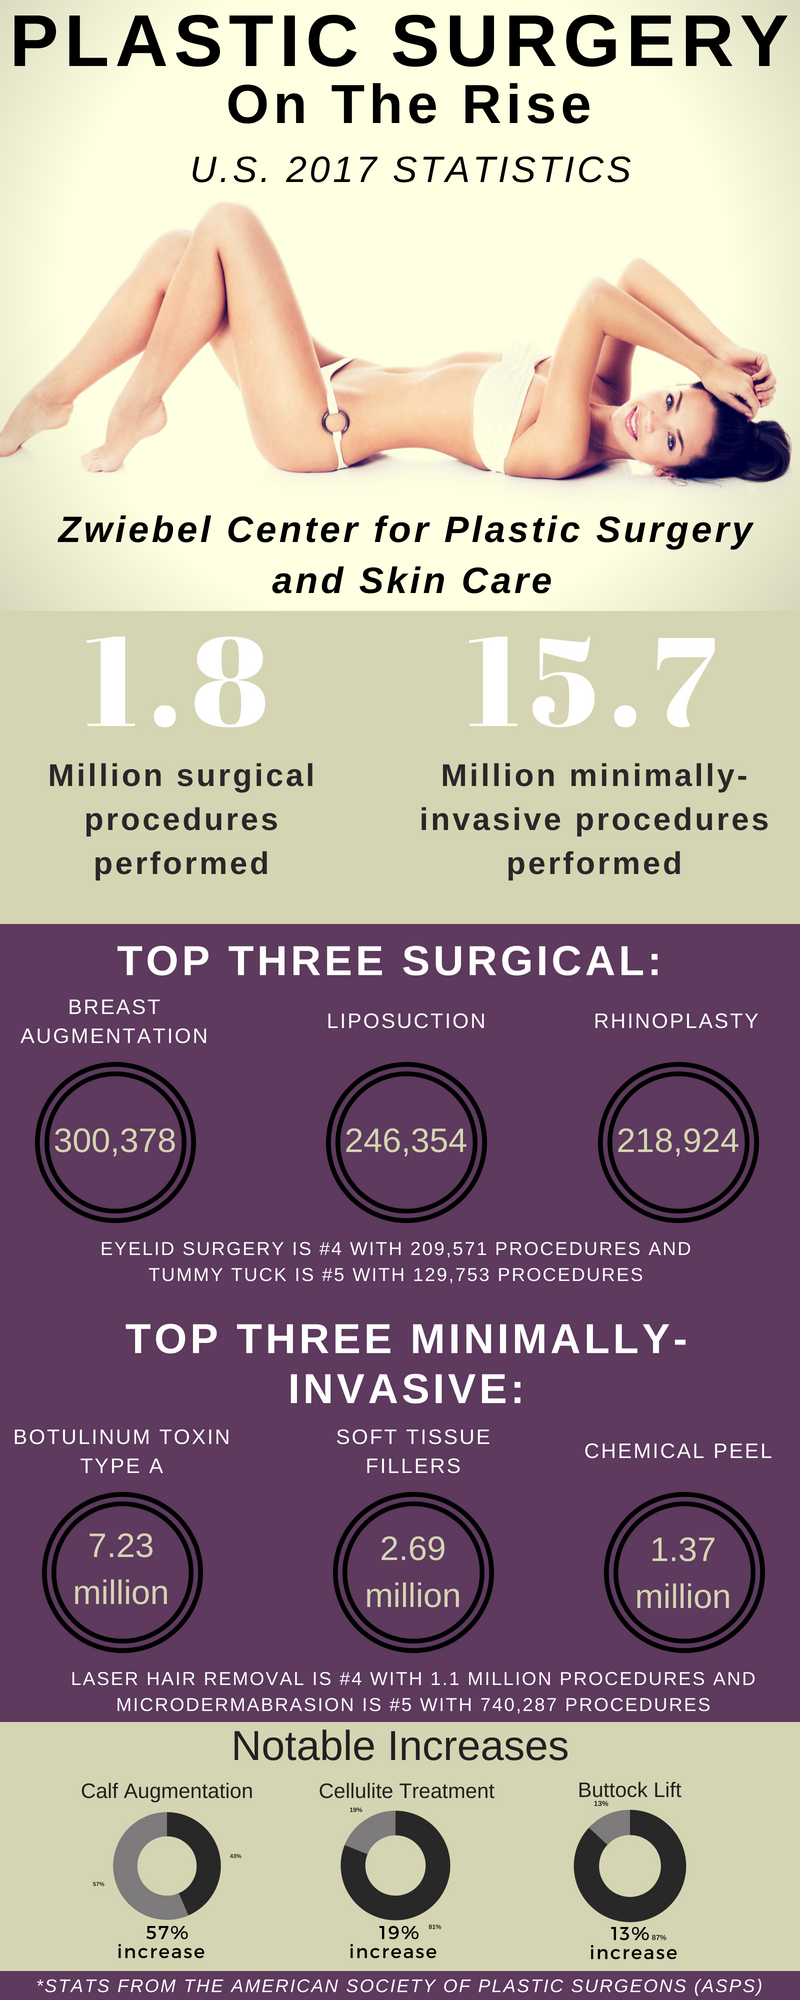 u.s. plastic surgery stats 2017 denver highlands ranch plastic surgery